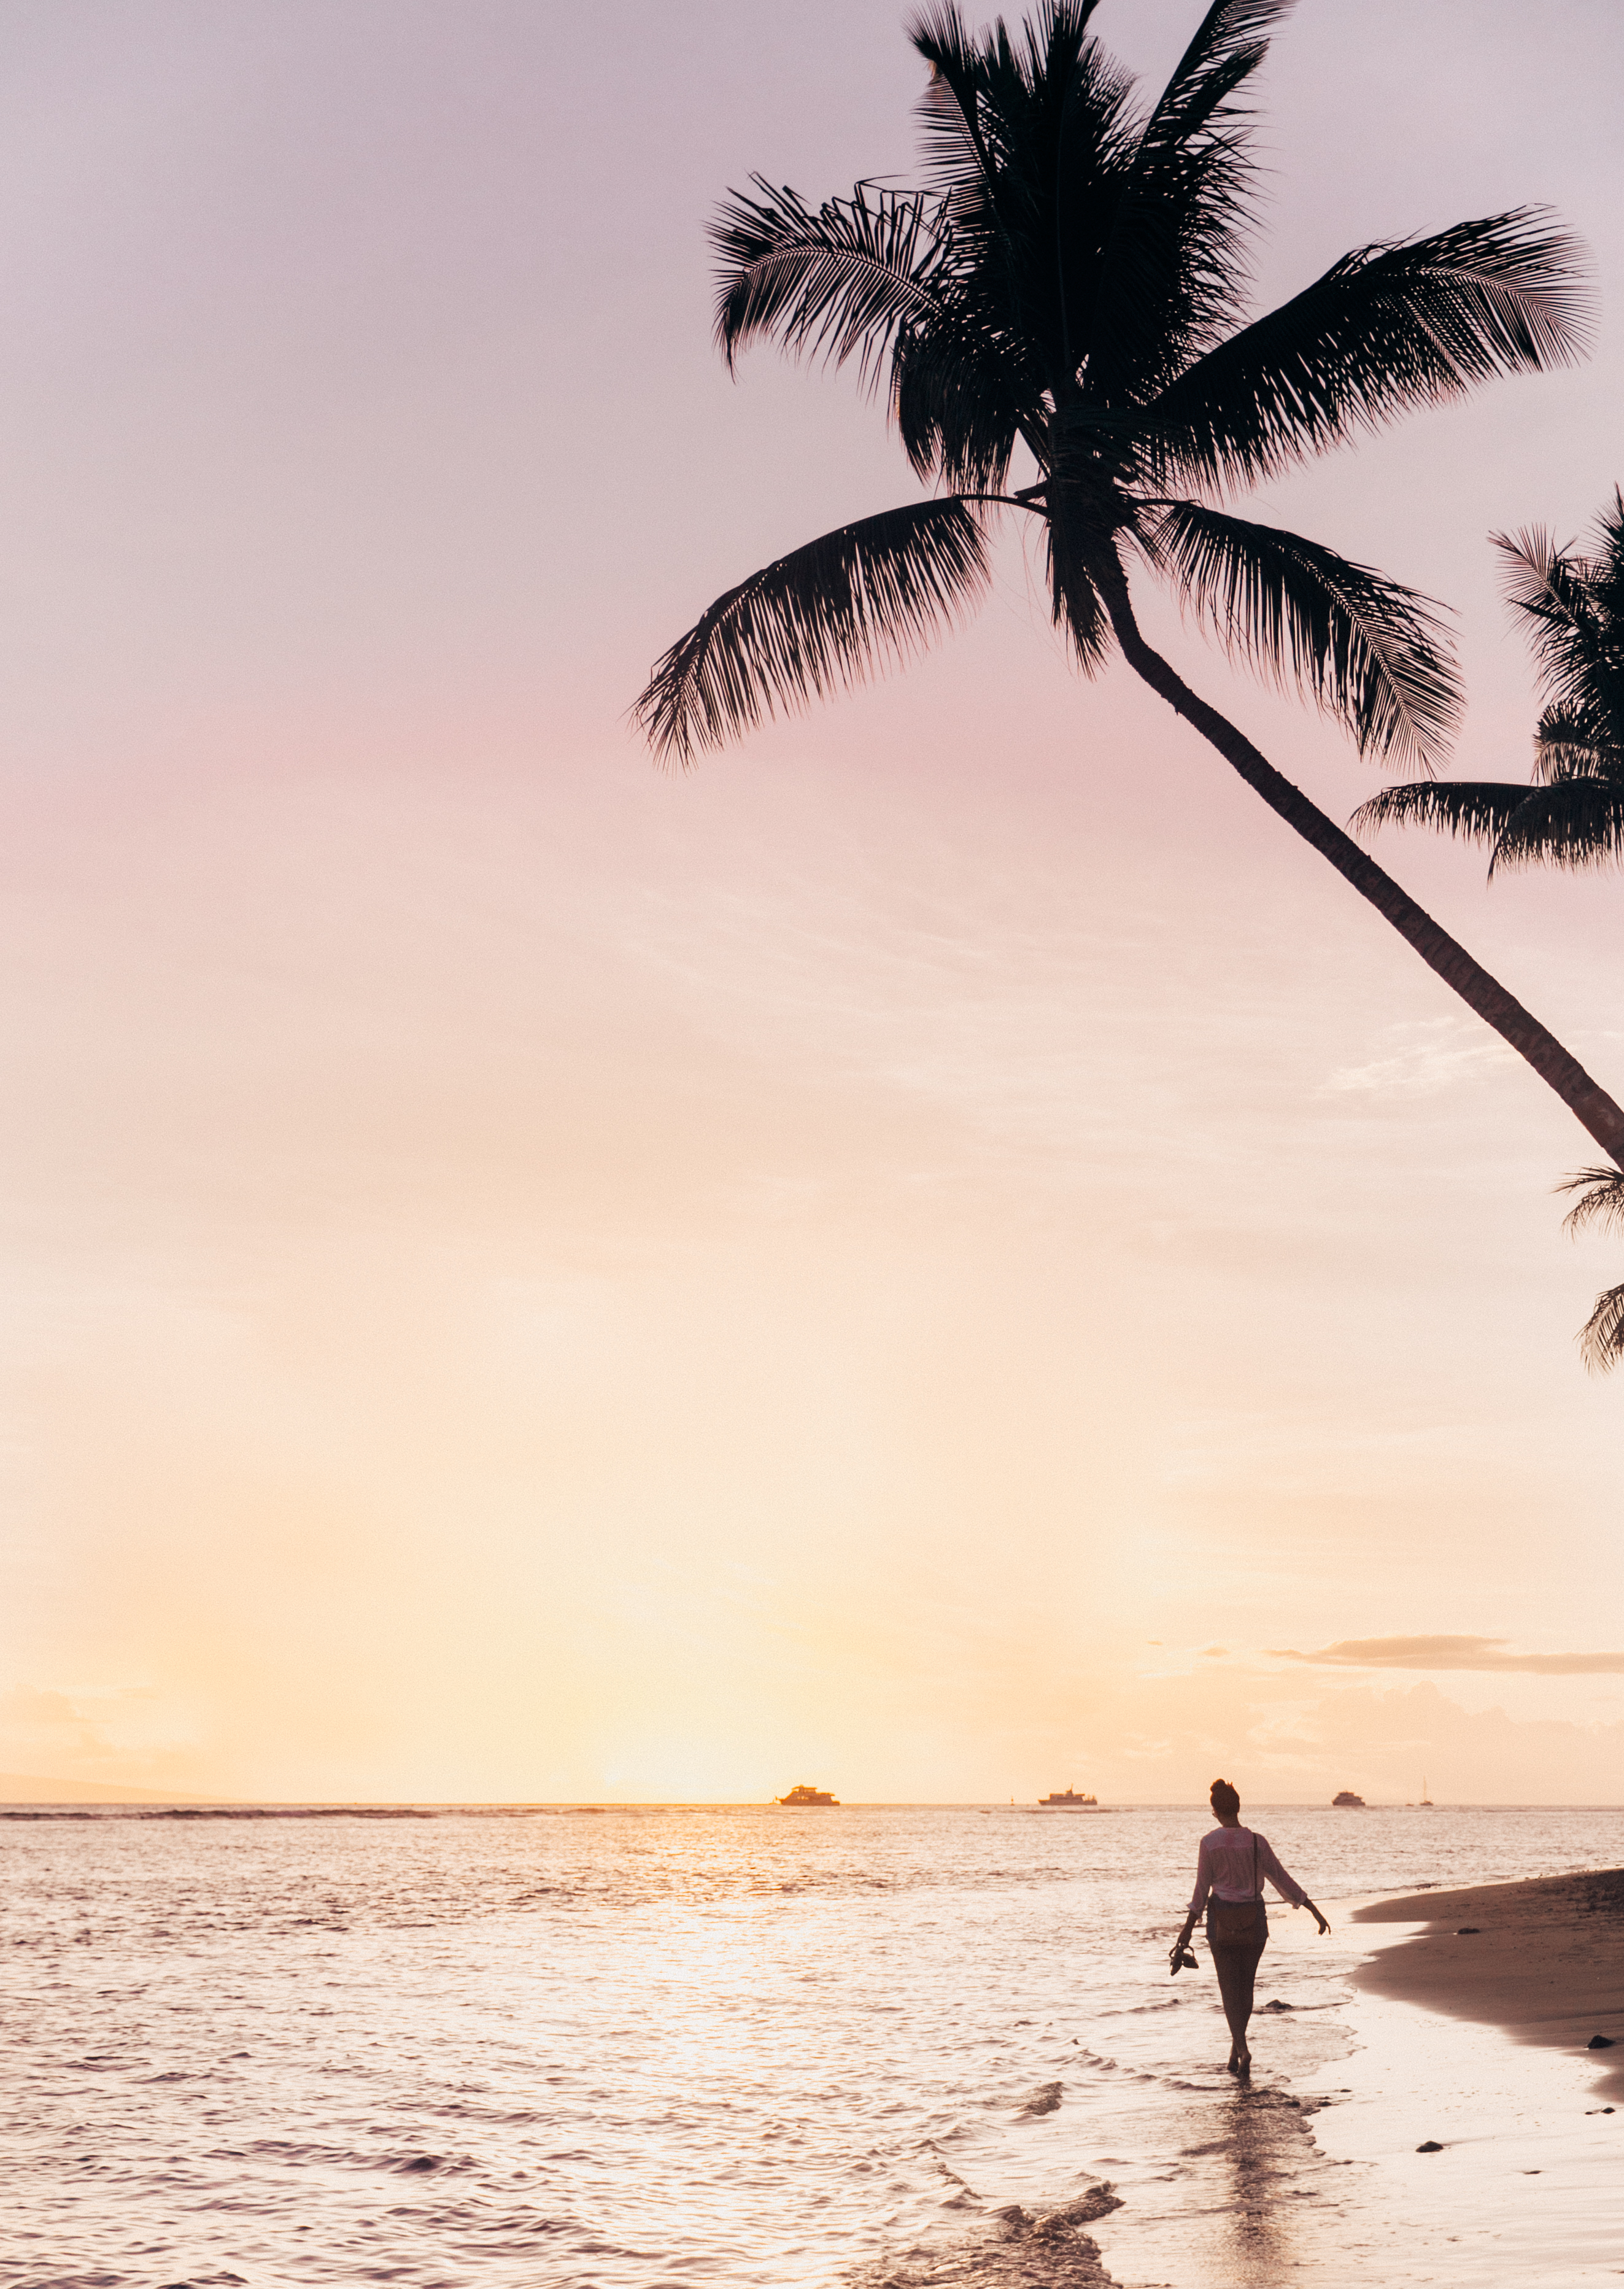 Sunset at Shark's Pit Beach | Sunset in Lahaina | Travel Inspo | Sunsets in Hawaii | Hawaiian Sunset | Hawaii Blogger | Things To Do In Lahaina | Things To Do in West Maui | Travel Inspiration | Hawaiian Island Hopping | Weekend In Maui | Guide to Spending The Weekend in Maui | Travel Blogger's Maui Recommendations via @elanaloo + elanaloo.com